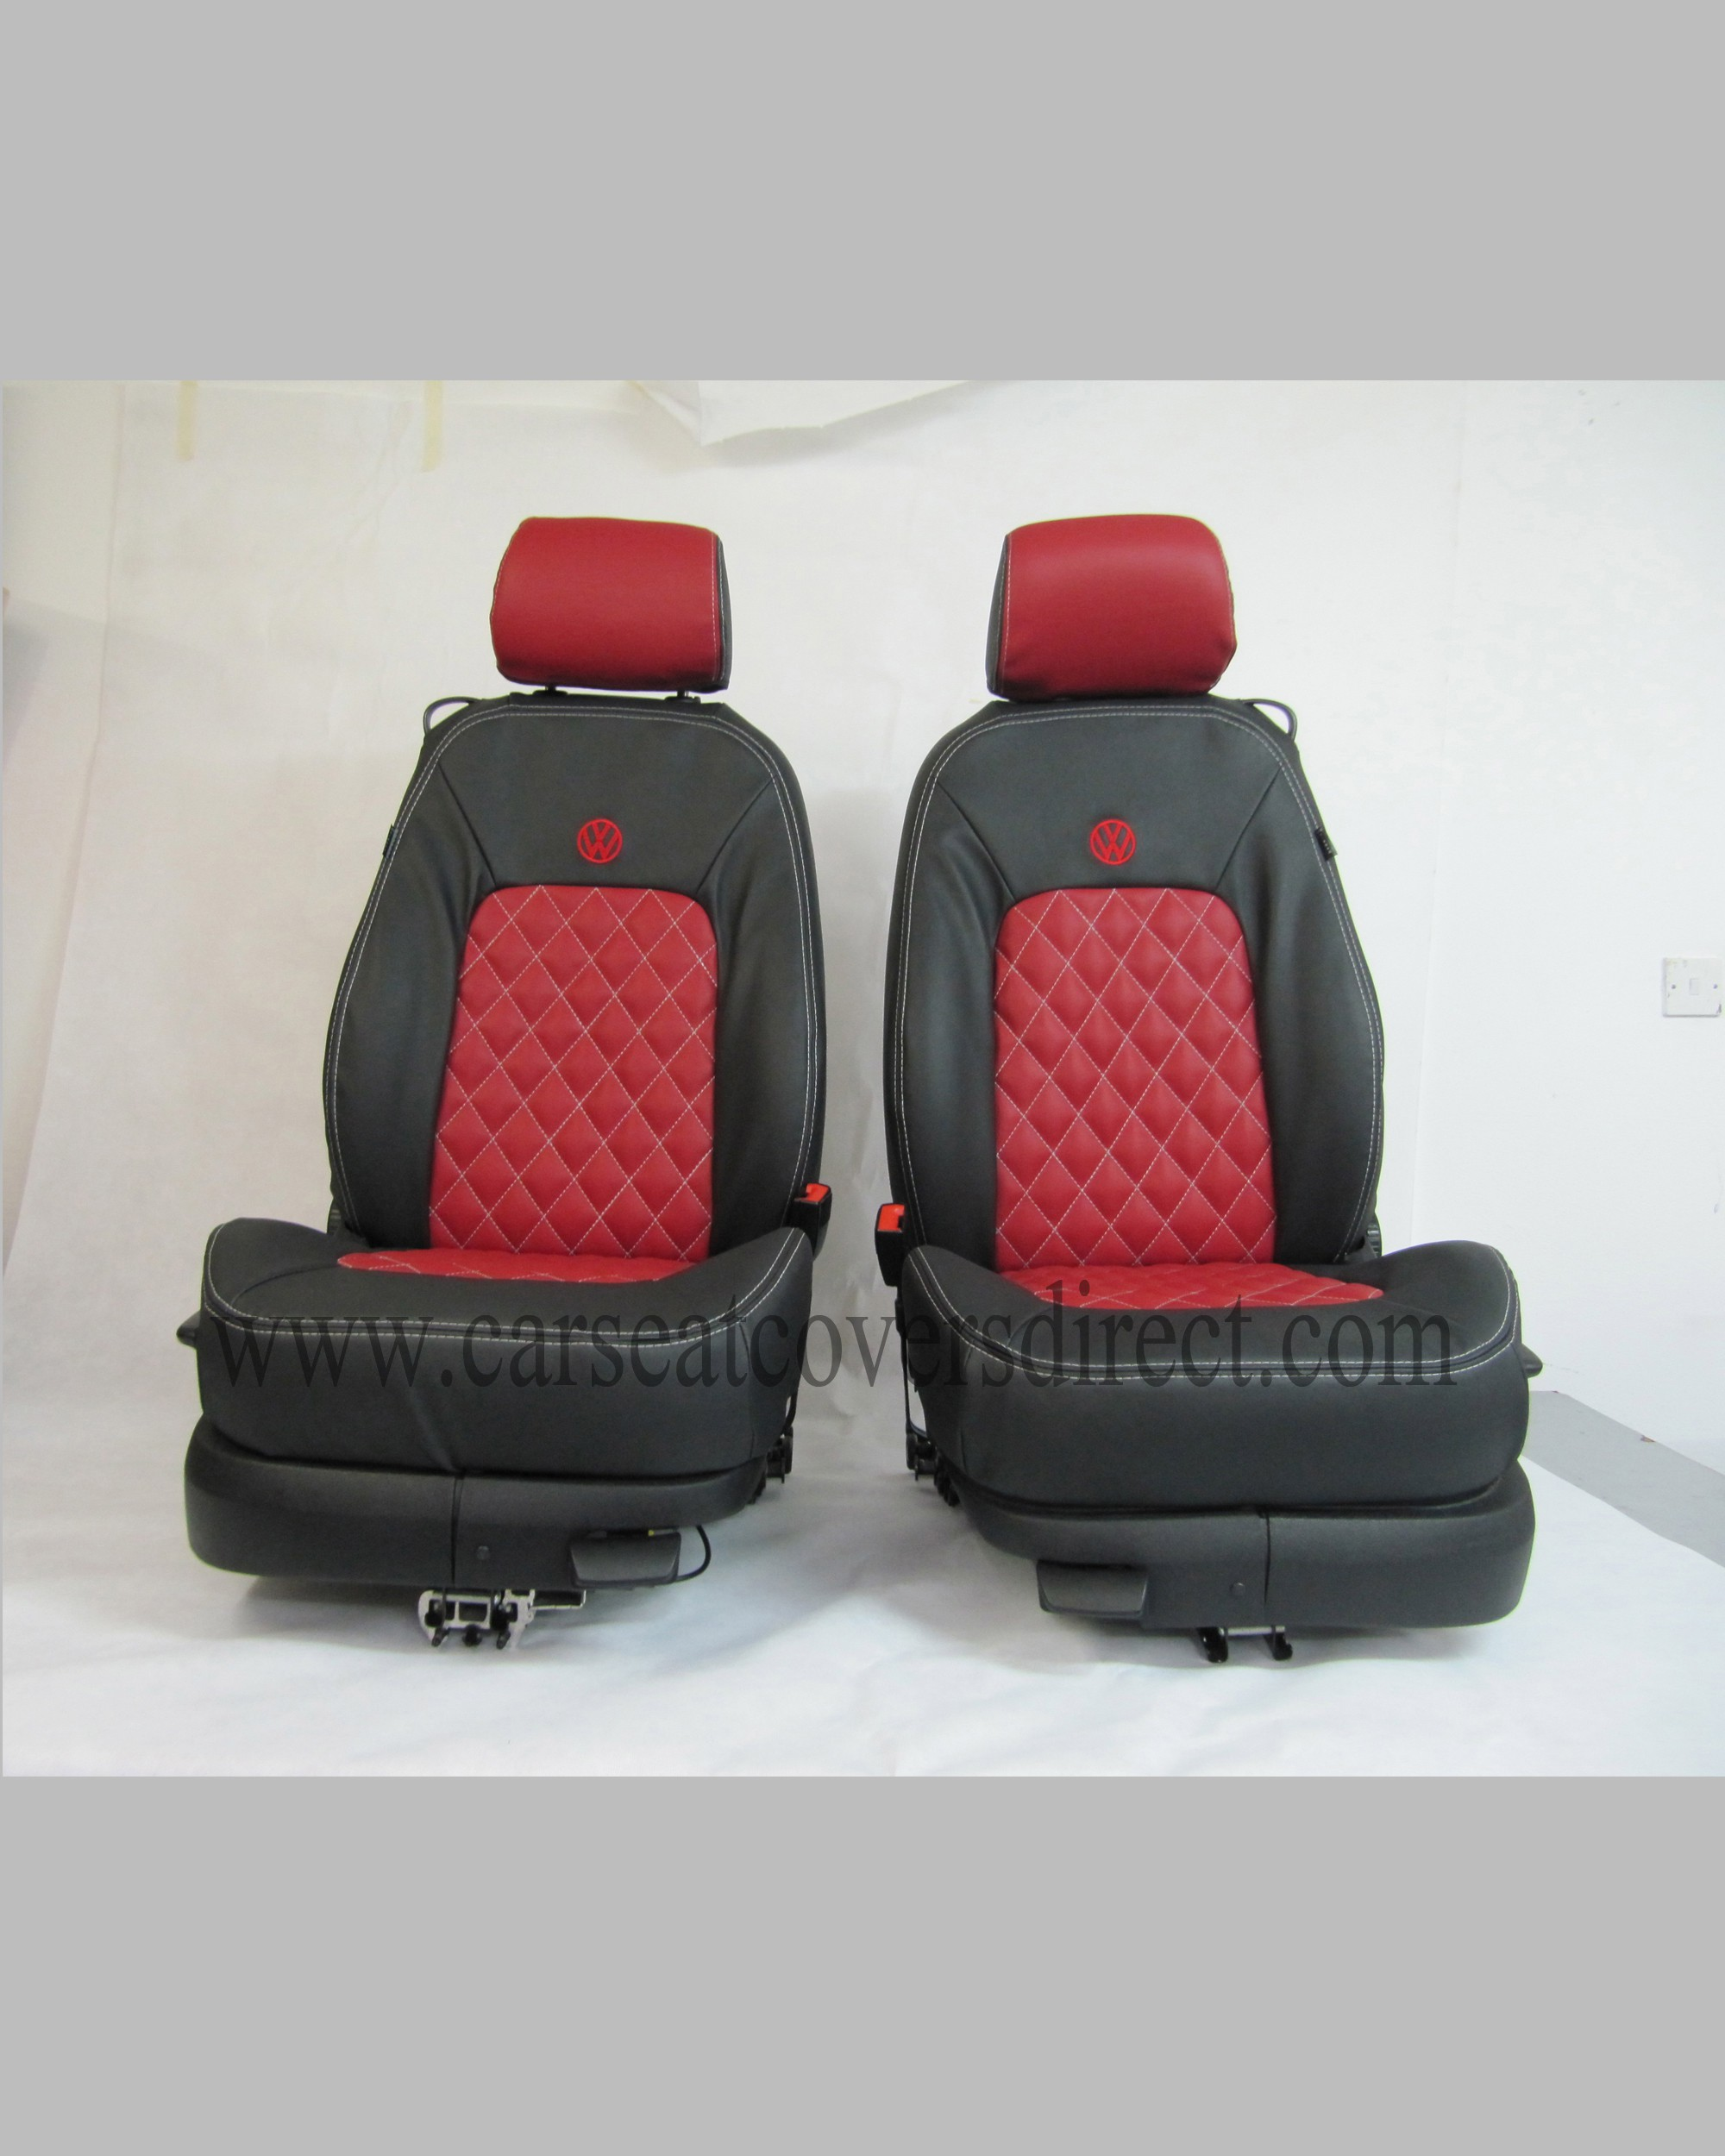 VOLKSWAGEN VW BEETLE Seat Covers